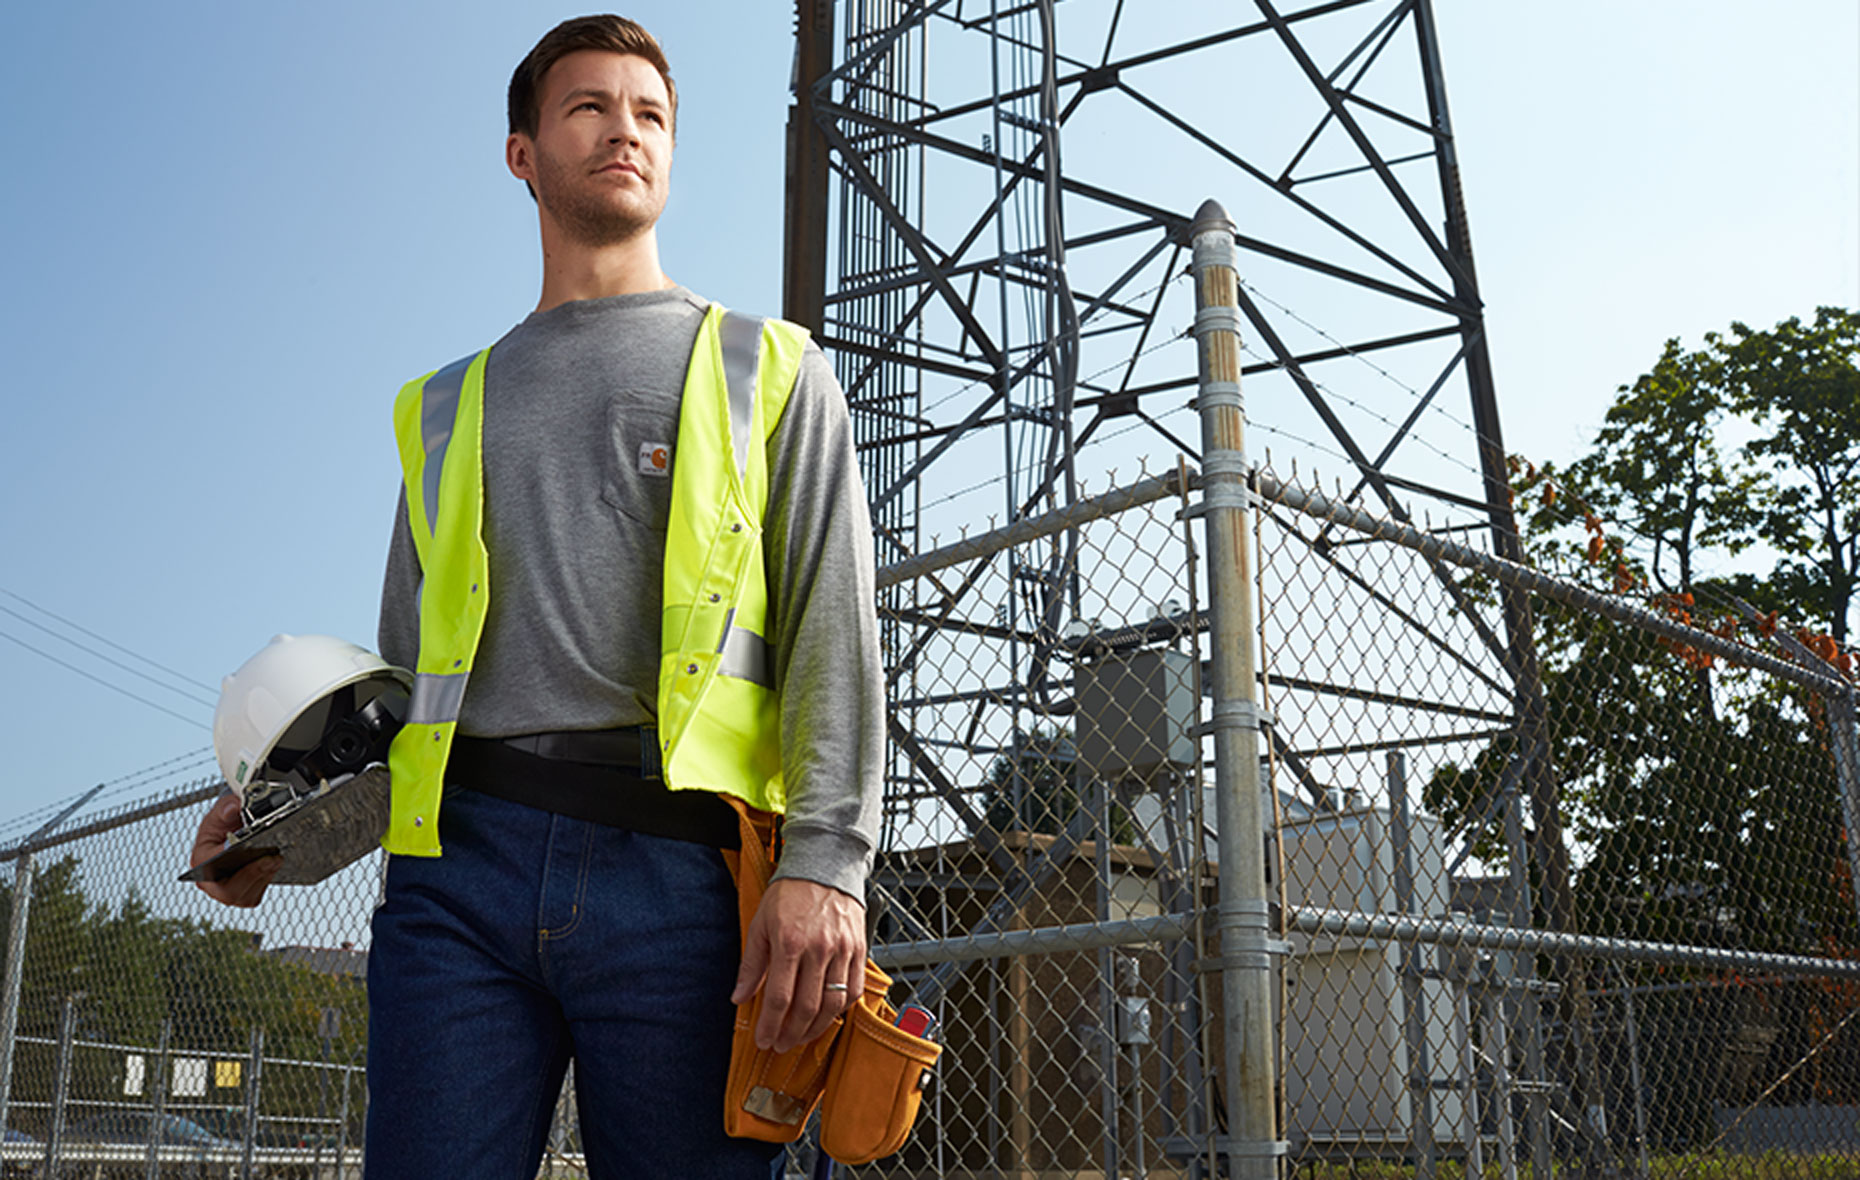 Utility employee in Carhartt long-sleeve tshirt, and high visibility vest